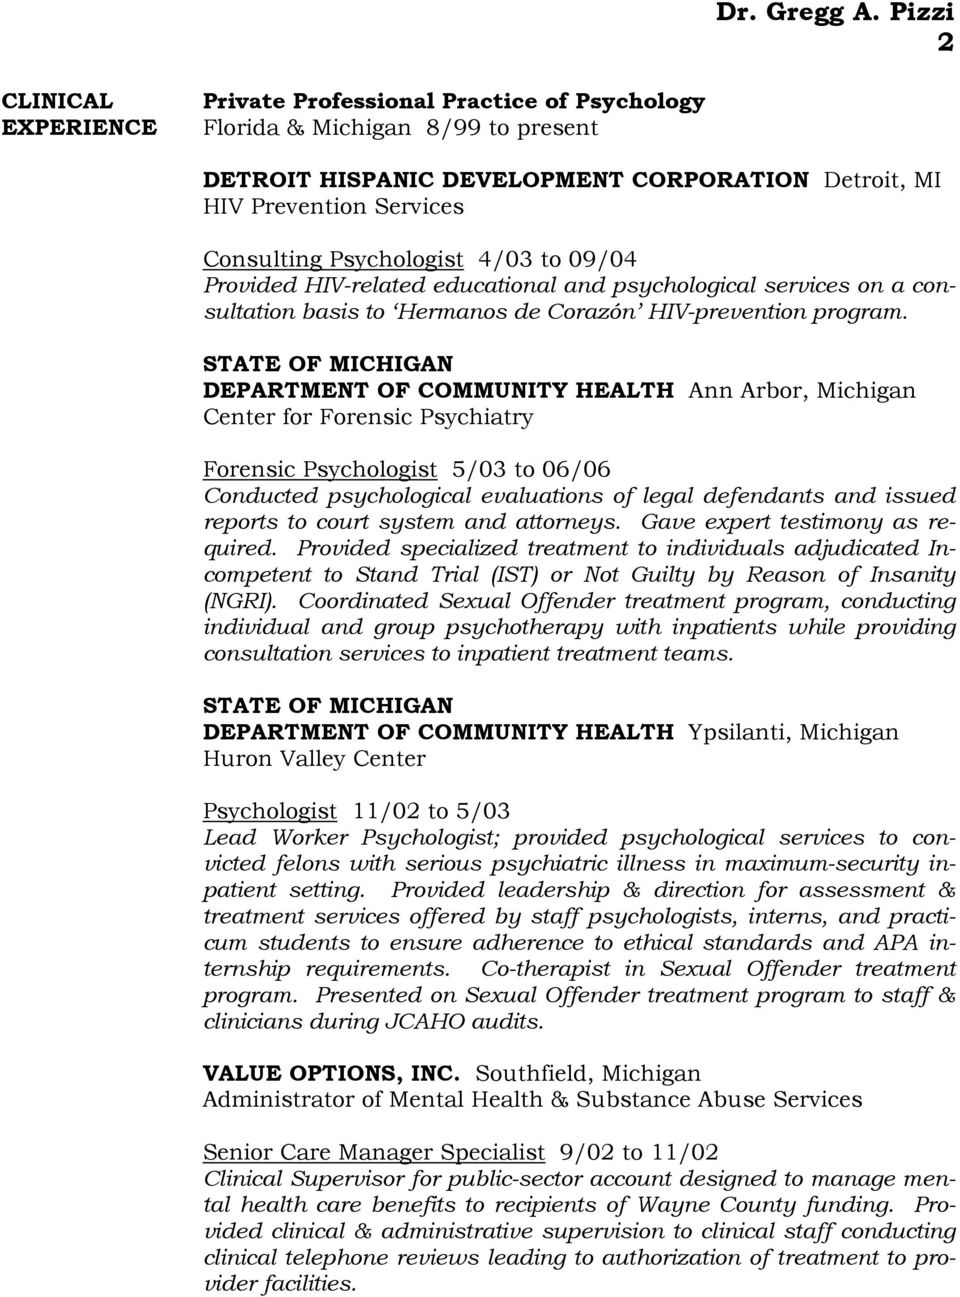 STATE OF MICHIGAN DEPARTMENT OF COMMUNITY HEALTH Ann Arbor, Michigan Center for Forensic Psychiatry Forensic Psychologist 5/03 to 06/06 Conducted psychological evaluations of legal defendants and